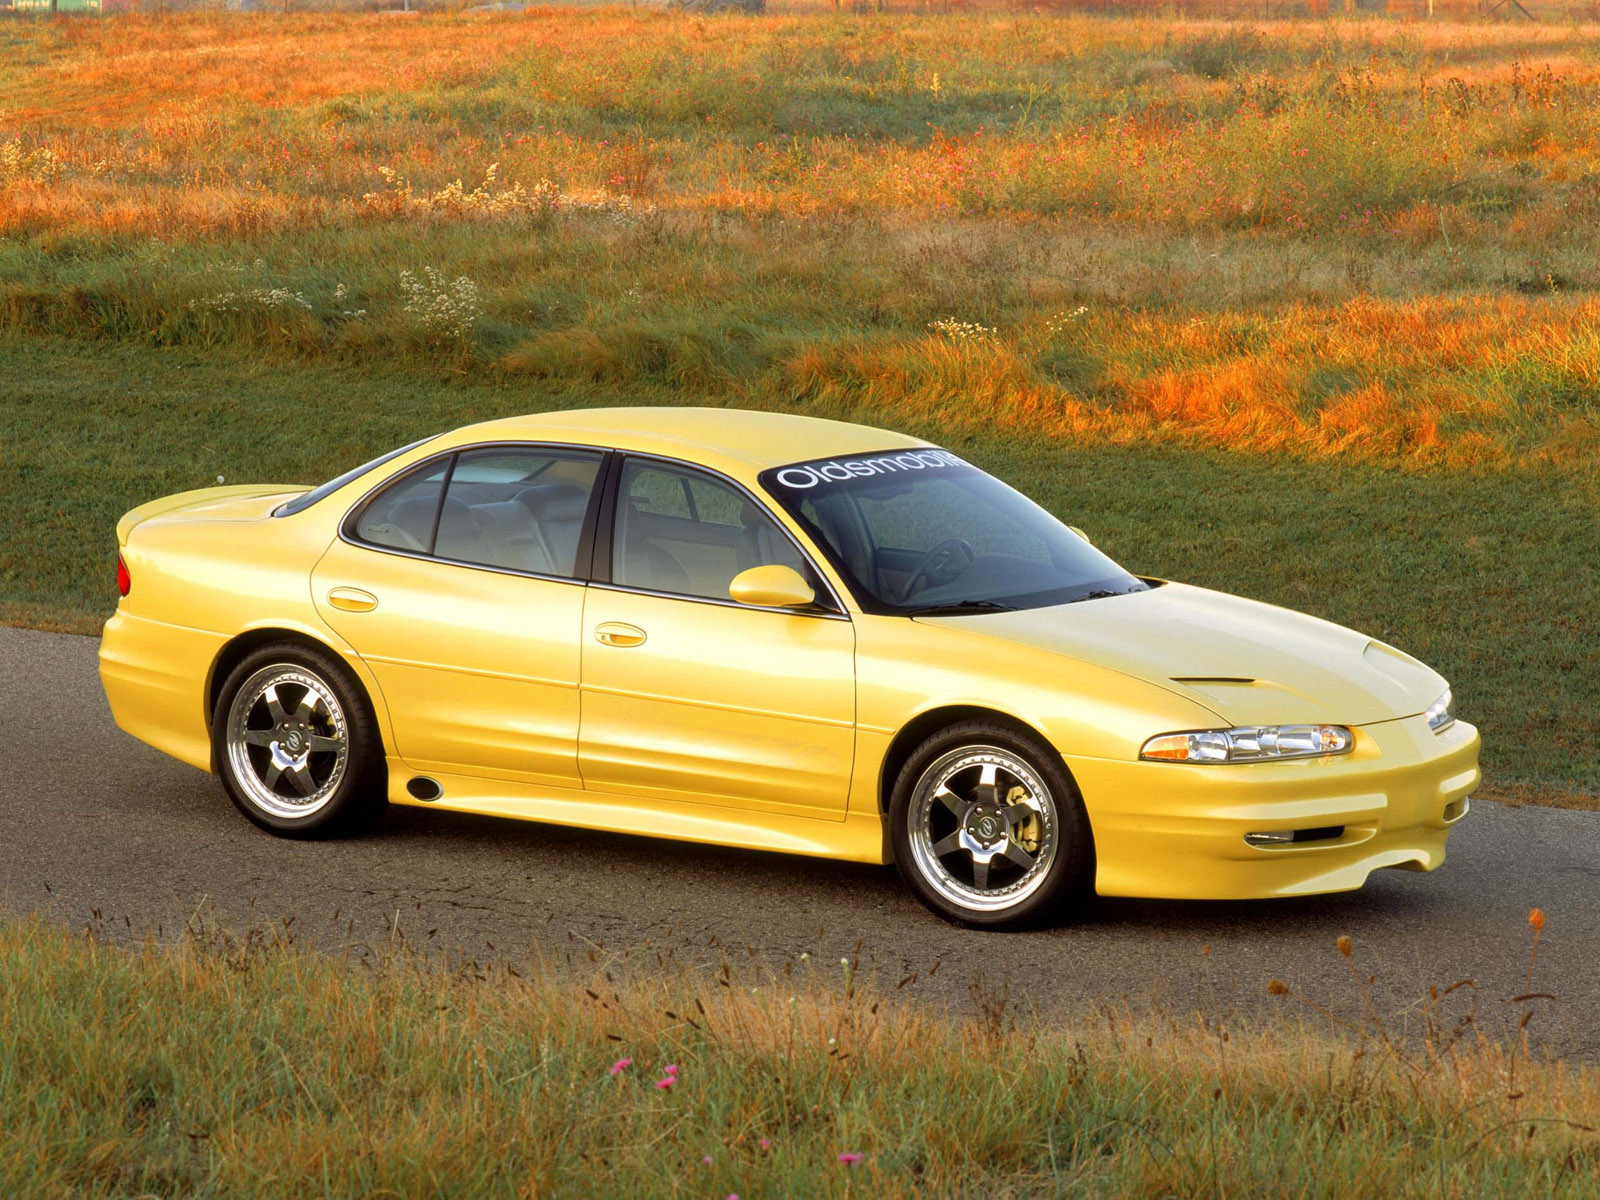 oldsmobile intrigue images #7